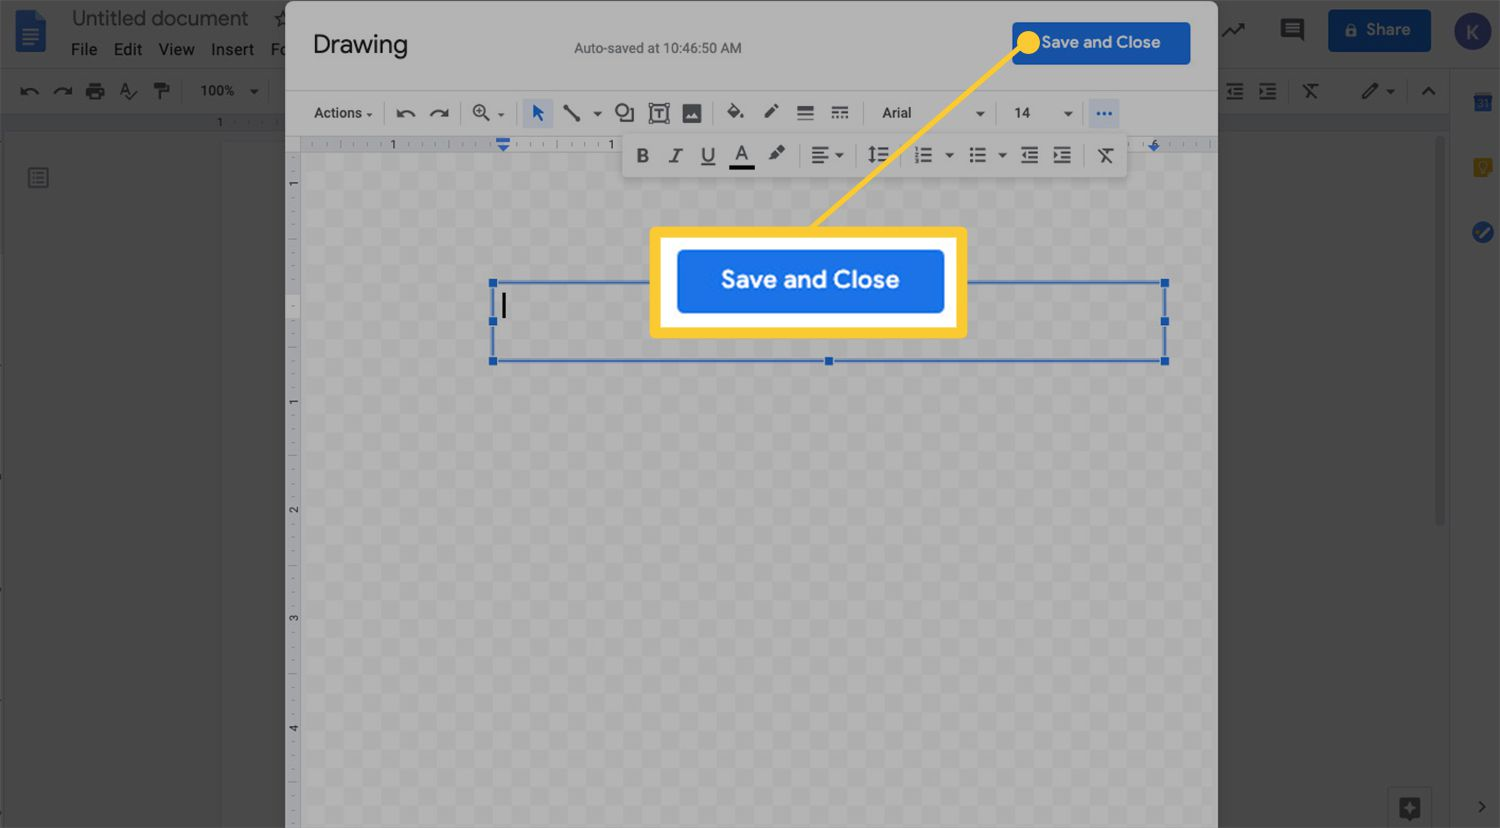 Drawing menu with Save and Close option